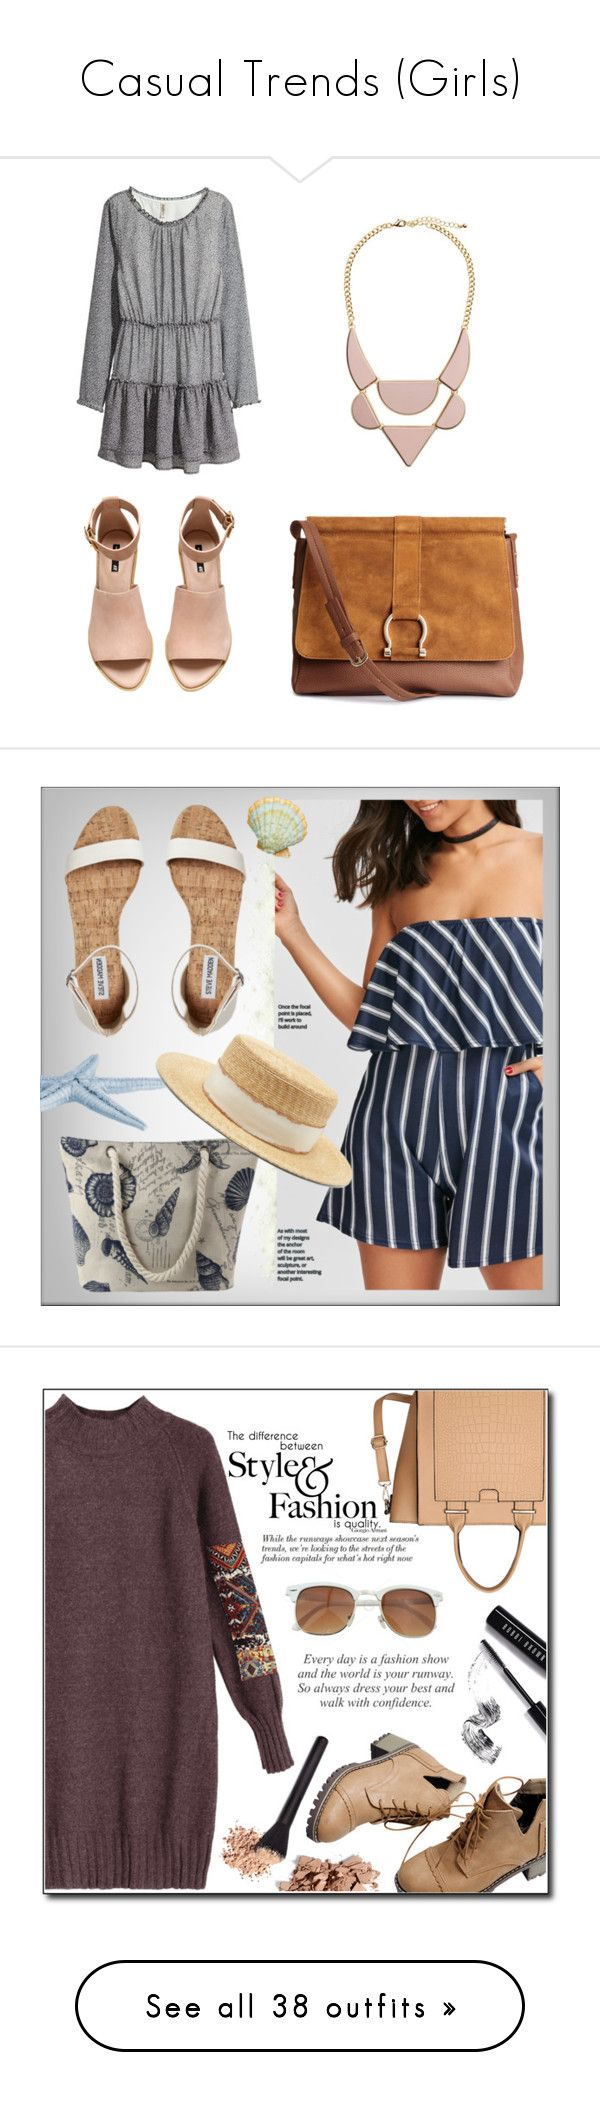 """""""Casual Trends (Girls)"""" by lhocreations ❤ liked on Polyvore featuring H&M, Filù Hats, Trish McEvoy, Bobbi Brown Cosmetics, Wrap, Spy Optic, Chiara Ferragni, NARS Cosmetics, ALDO and Marc by Marc Jacobs"""